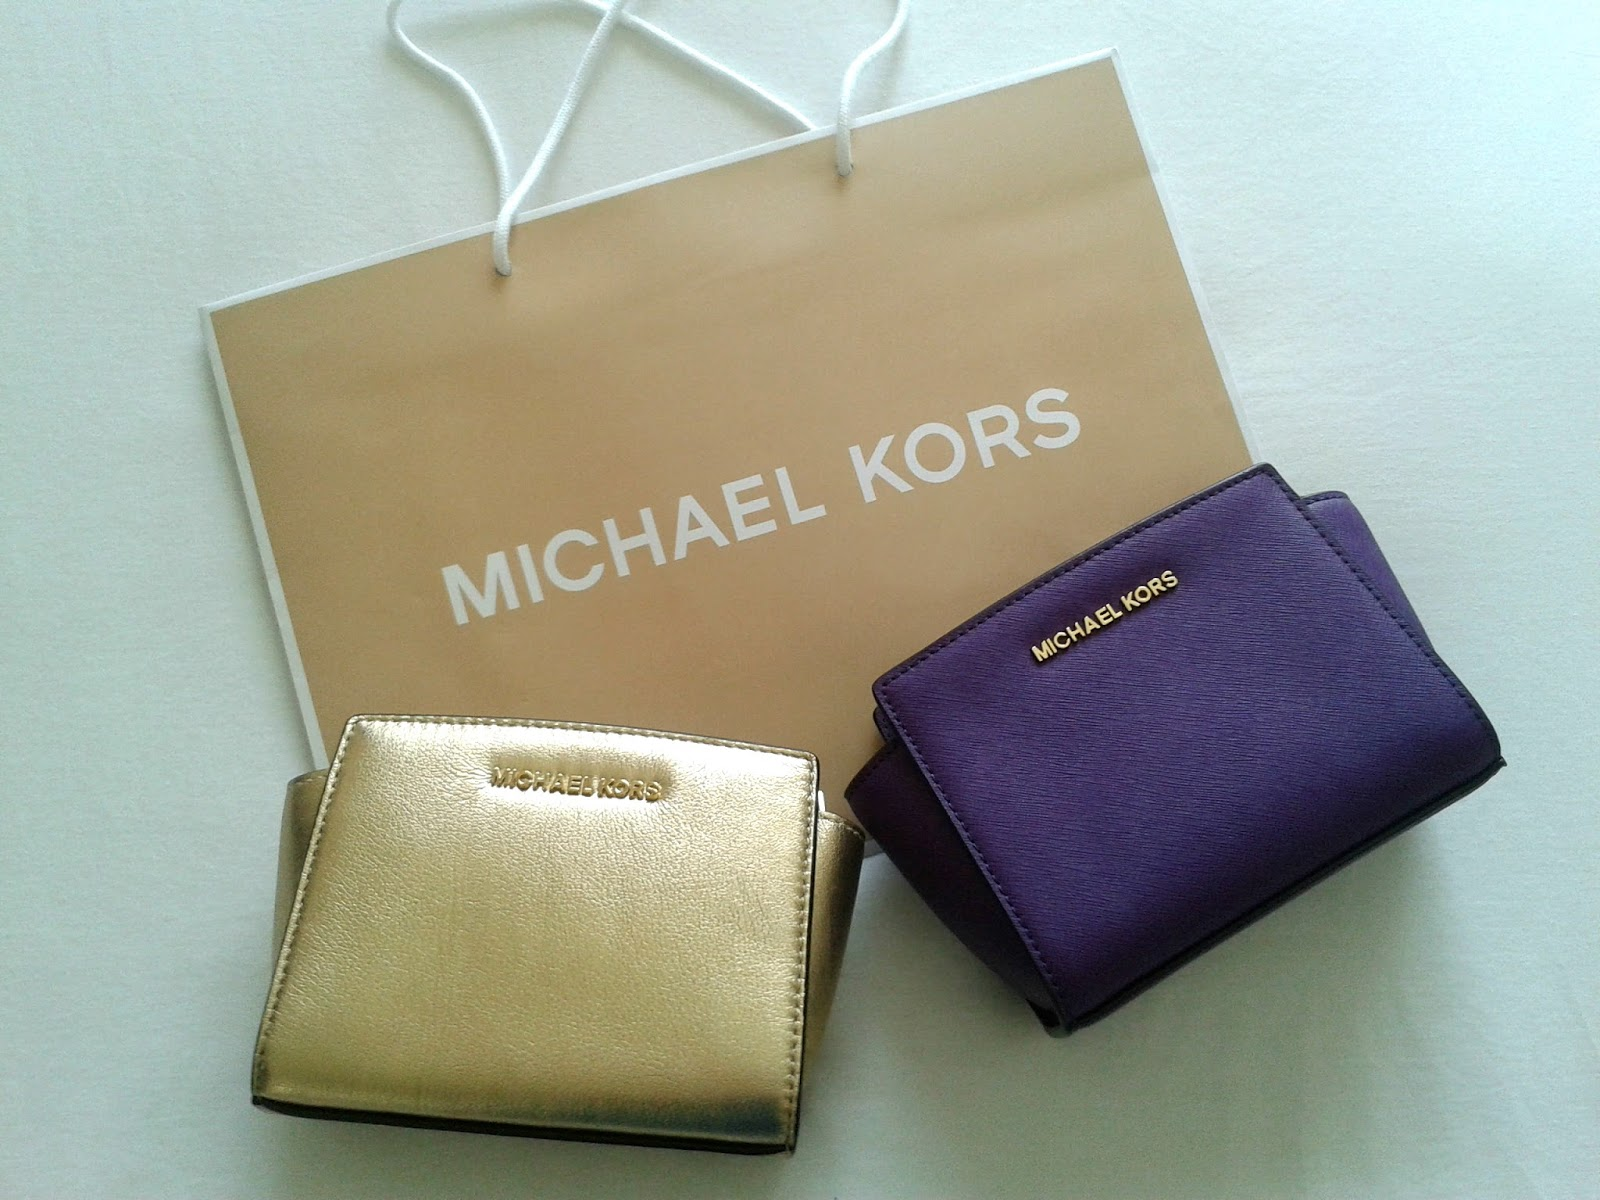 Michael Kors Mini Selma Handbags Fashion Haul